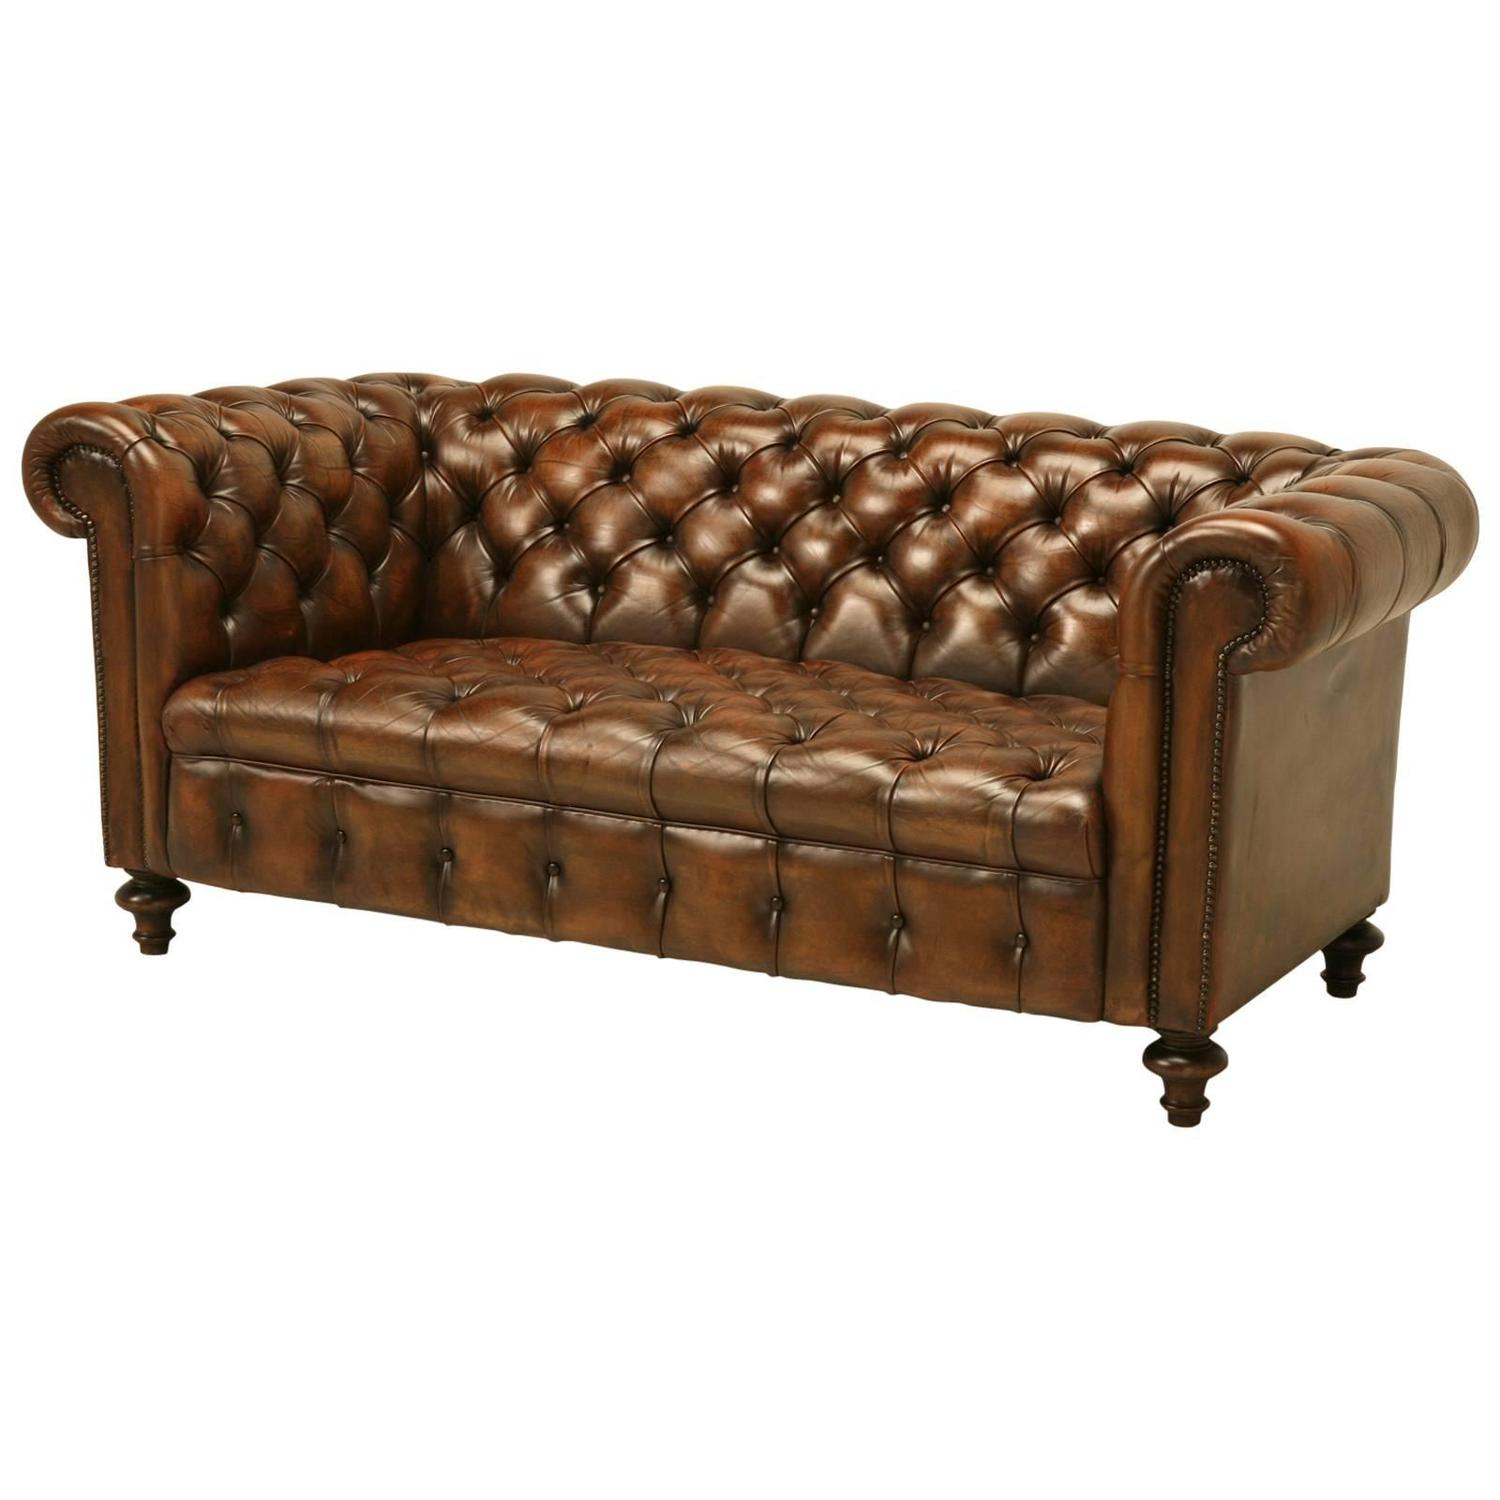 English leather chesterfield sofa at 1stdibs for Sofa vs couch english